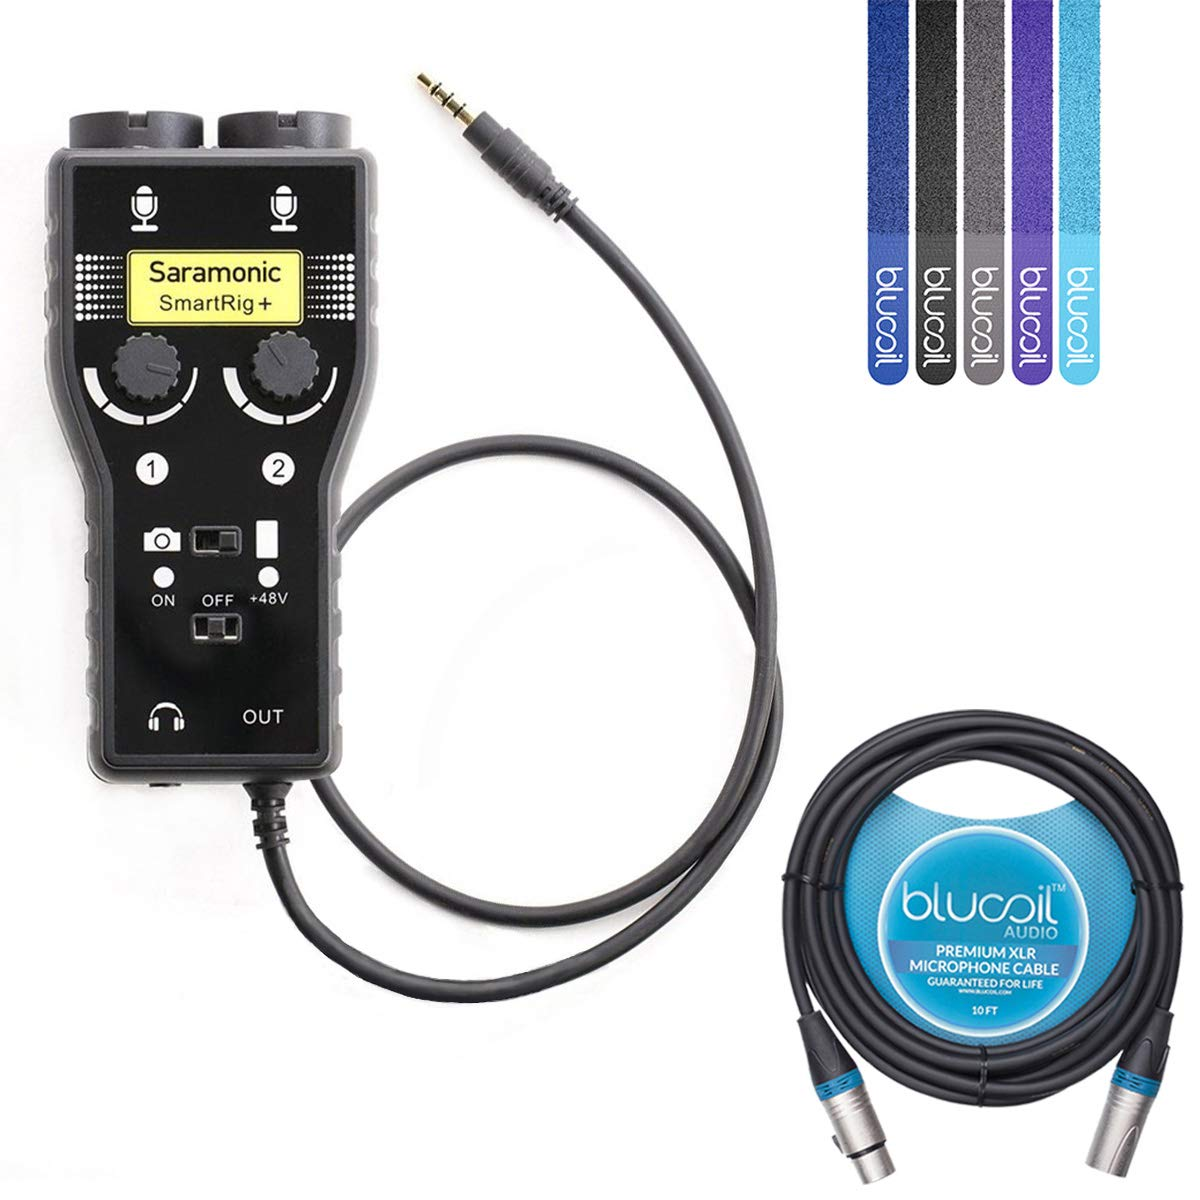 Saramonic SmartRig Plus 2-Ch Mixer/Audio Adapter with 48v Phantom Power for XLR / 3.5mm Microphones Bundle with Blucoil 10-Ft XLR Cable and 5-Pack of Cable Ties